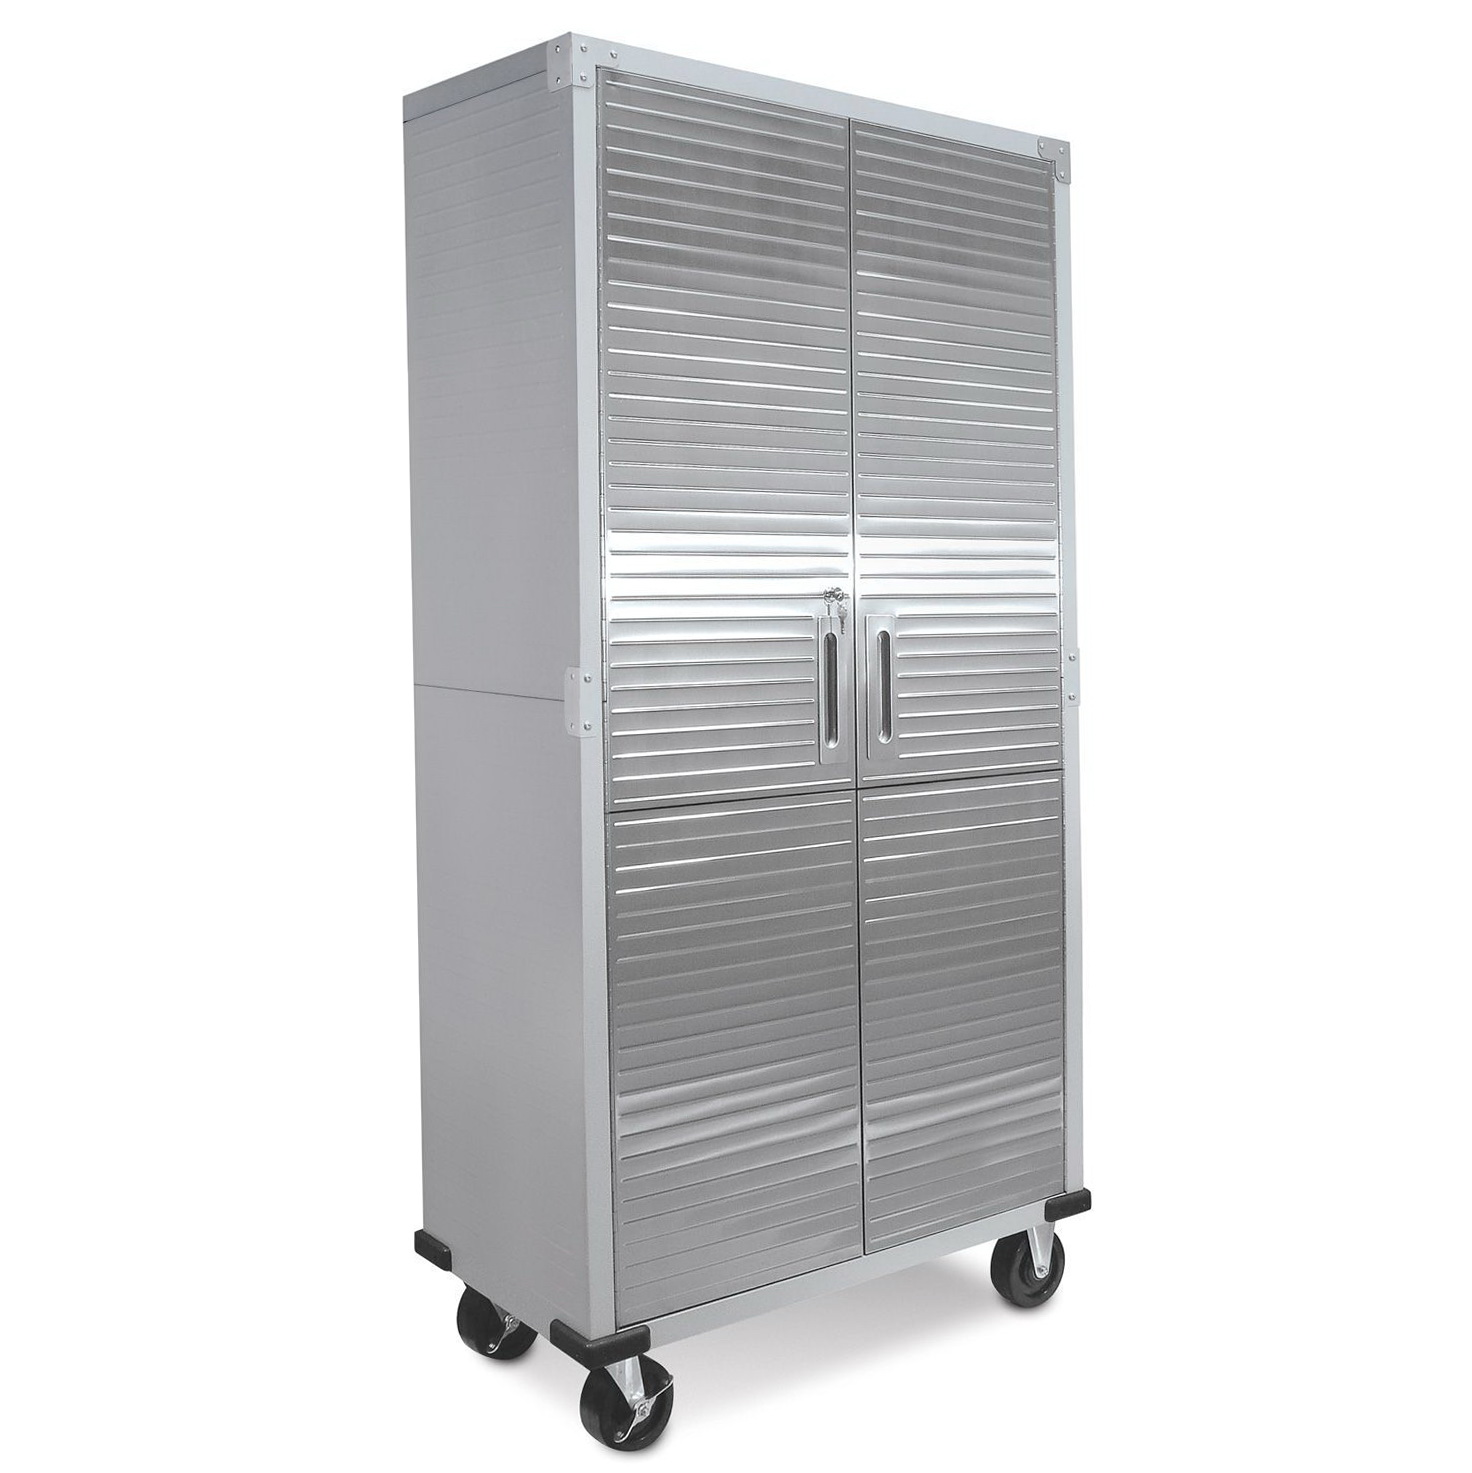 Metal Storage Cabinets On Wheels